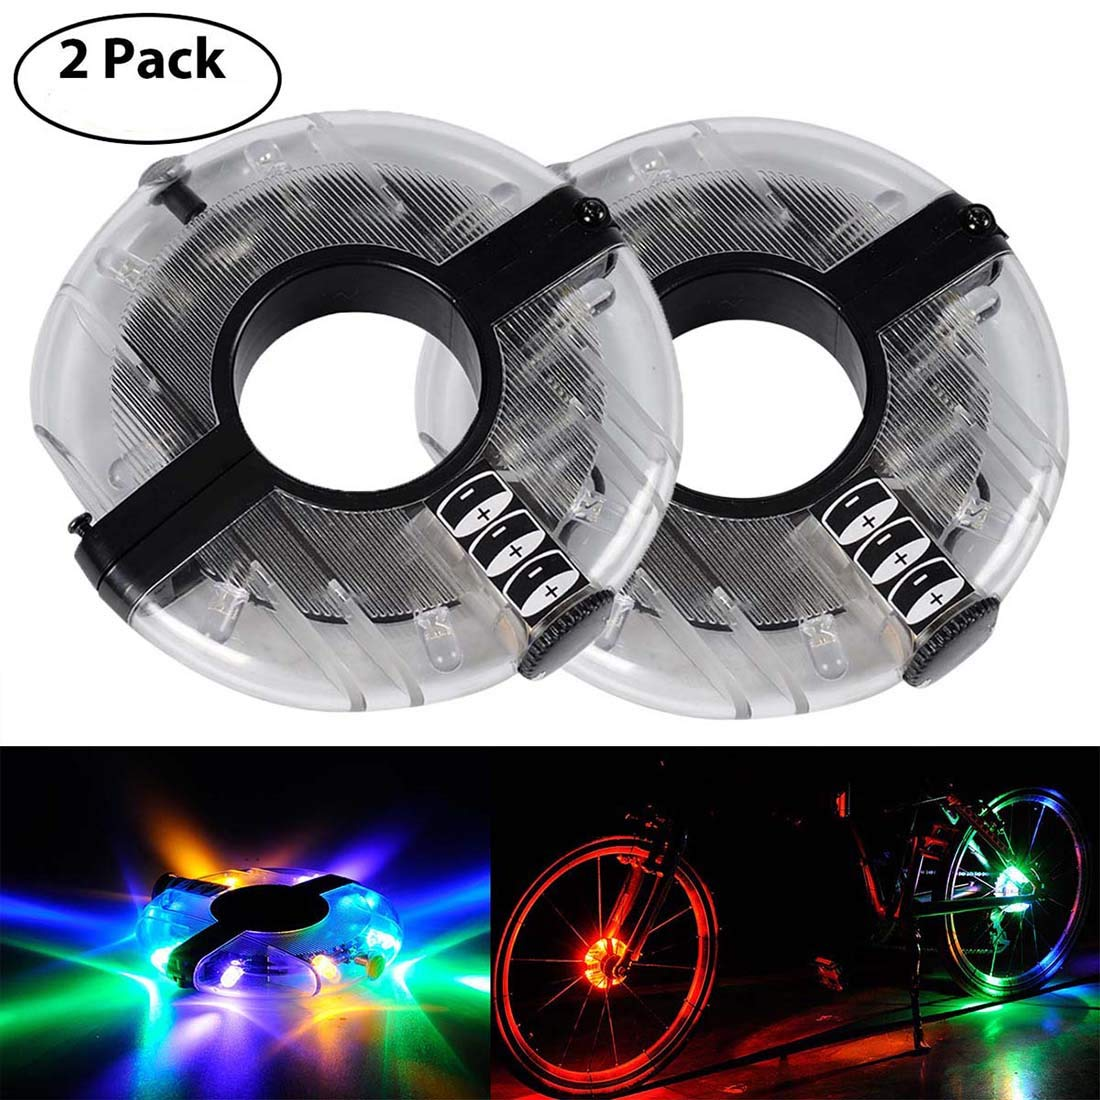 Colorful LED Bicycle Wheel Decoration Lights 3 Modes Cycling Bike Spoke Light Safety Light by LoveUlife (Image #1)